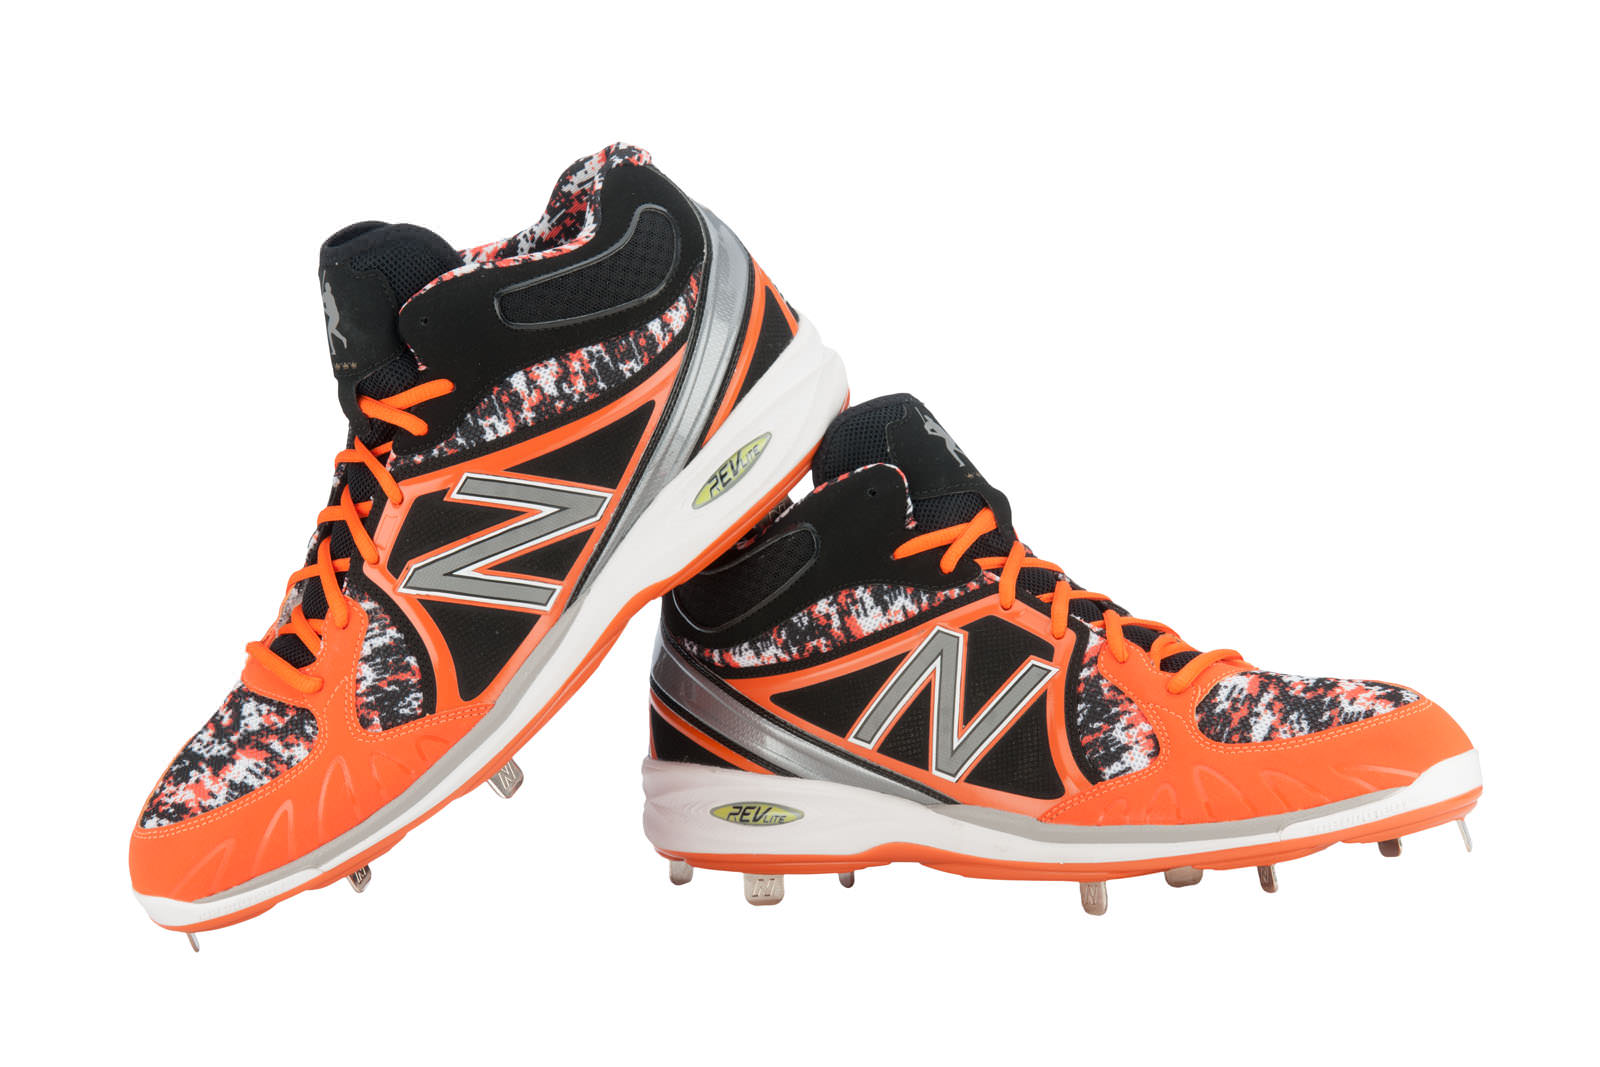 c3dfeff7fe5e0 What Pros Wear: Miguel Cabrera's Updated New Balance 3000 Cleats ...